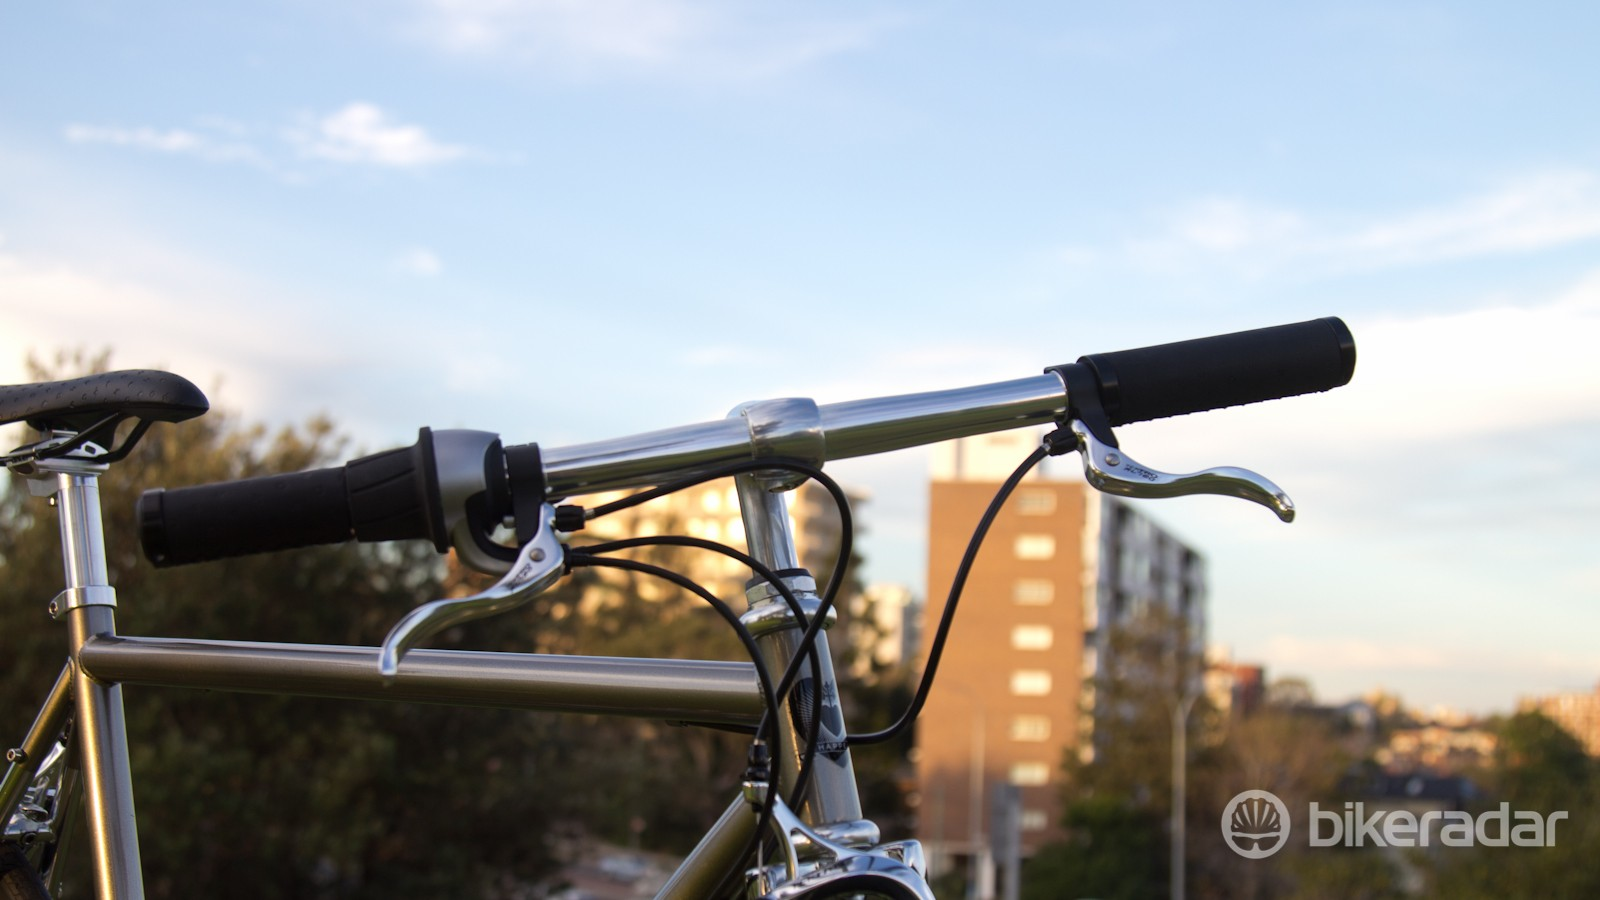 Narrow handlebars help cut through traffic. But at just 540mm, they make the handling a little twitchy